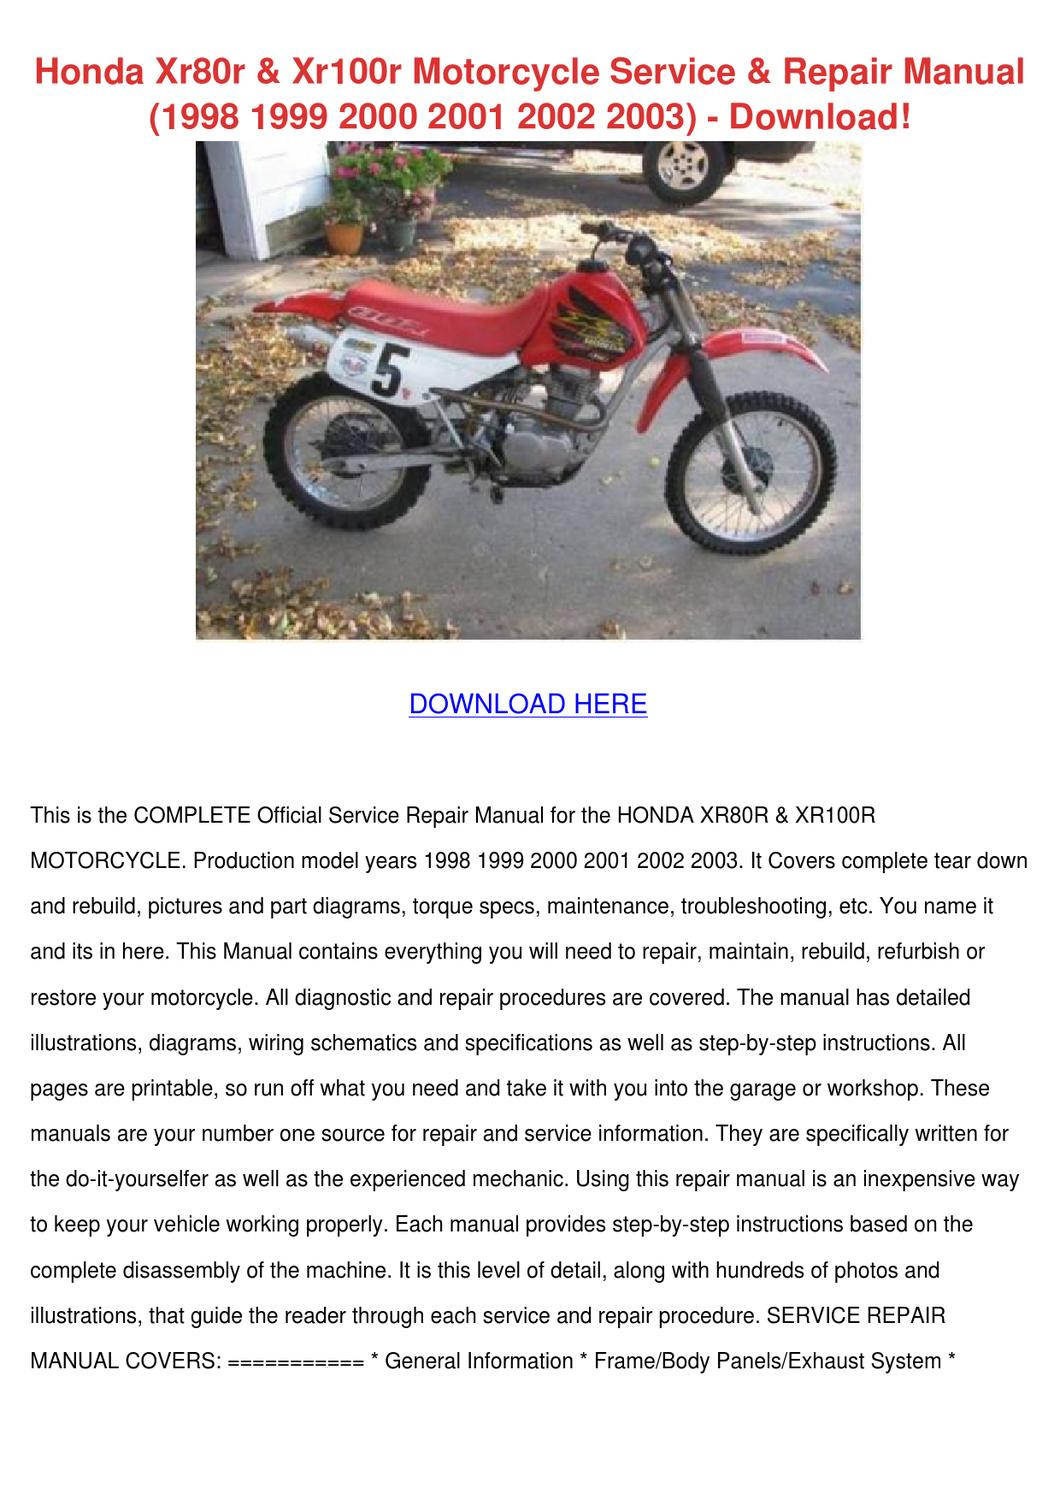 wiring schematic 2002 honda xr80r    honda       xr80r    xr100r motorcycle service repair by     honda       xr80r    xr100r motorcycle service repair by